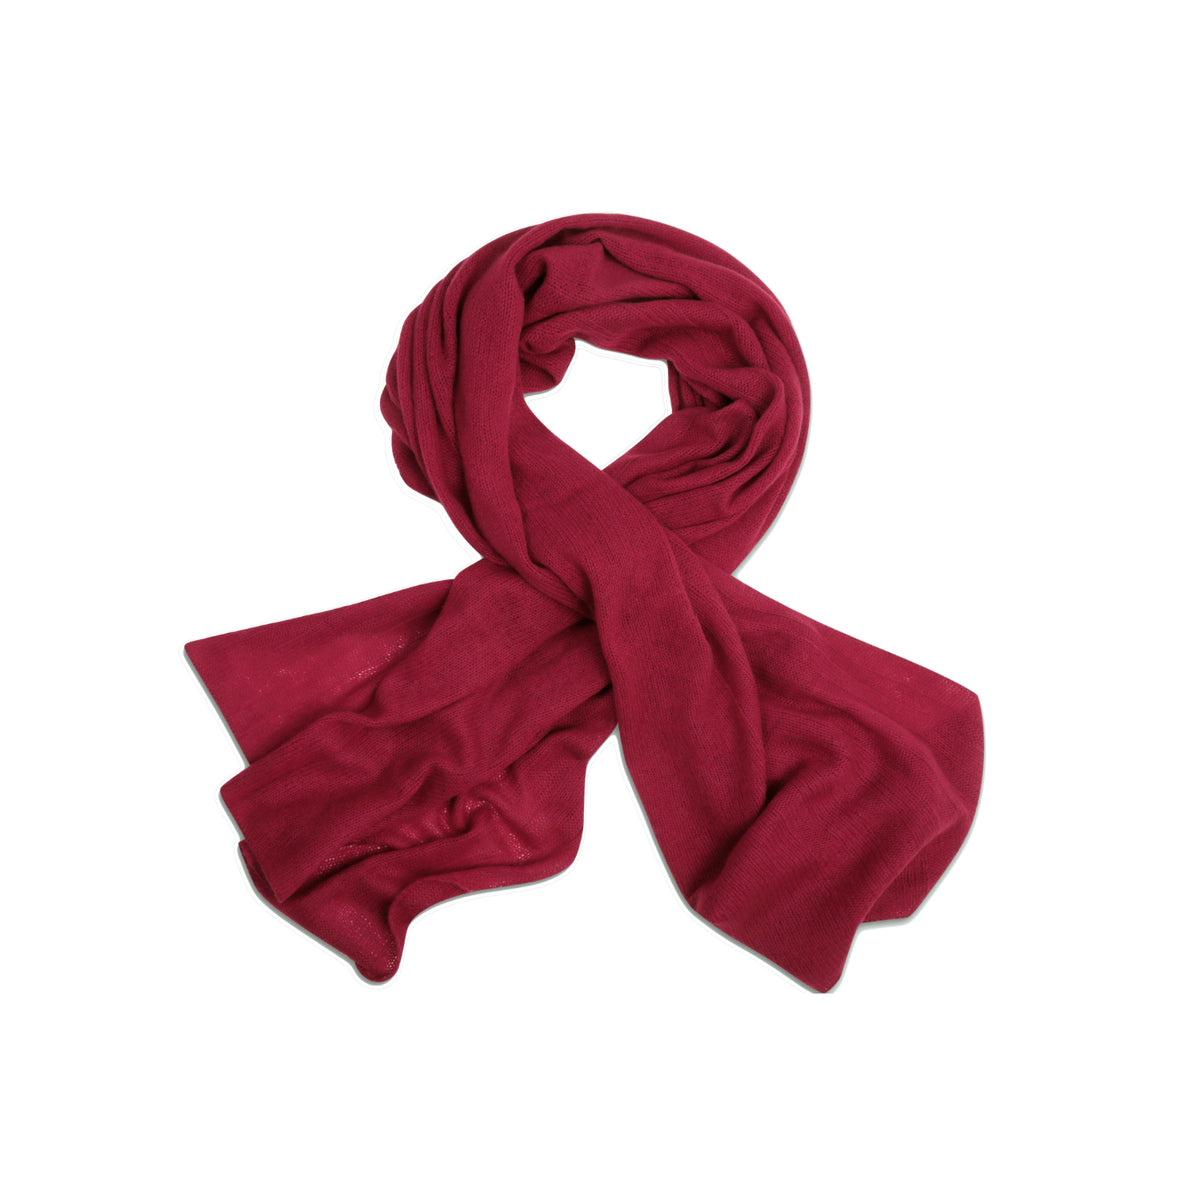 Bordeaux Wine | Knitted Cashmere Stole | Knitted Cashmere Scarf | Shop at The Cashmere Choice | London